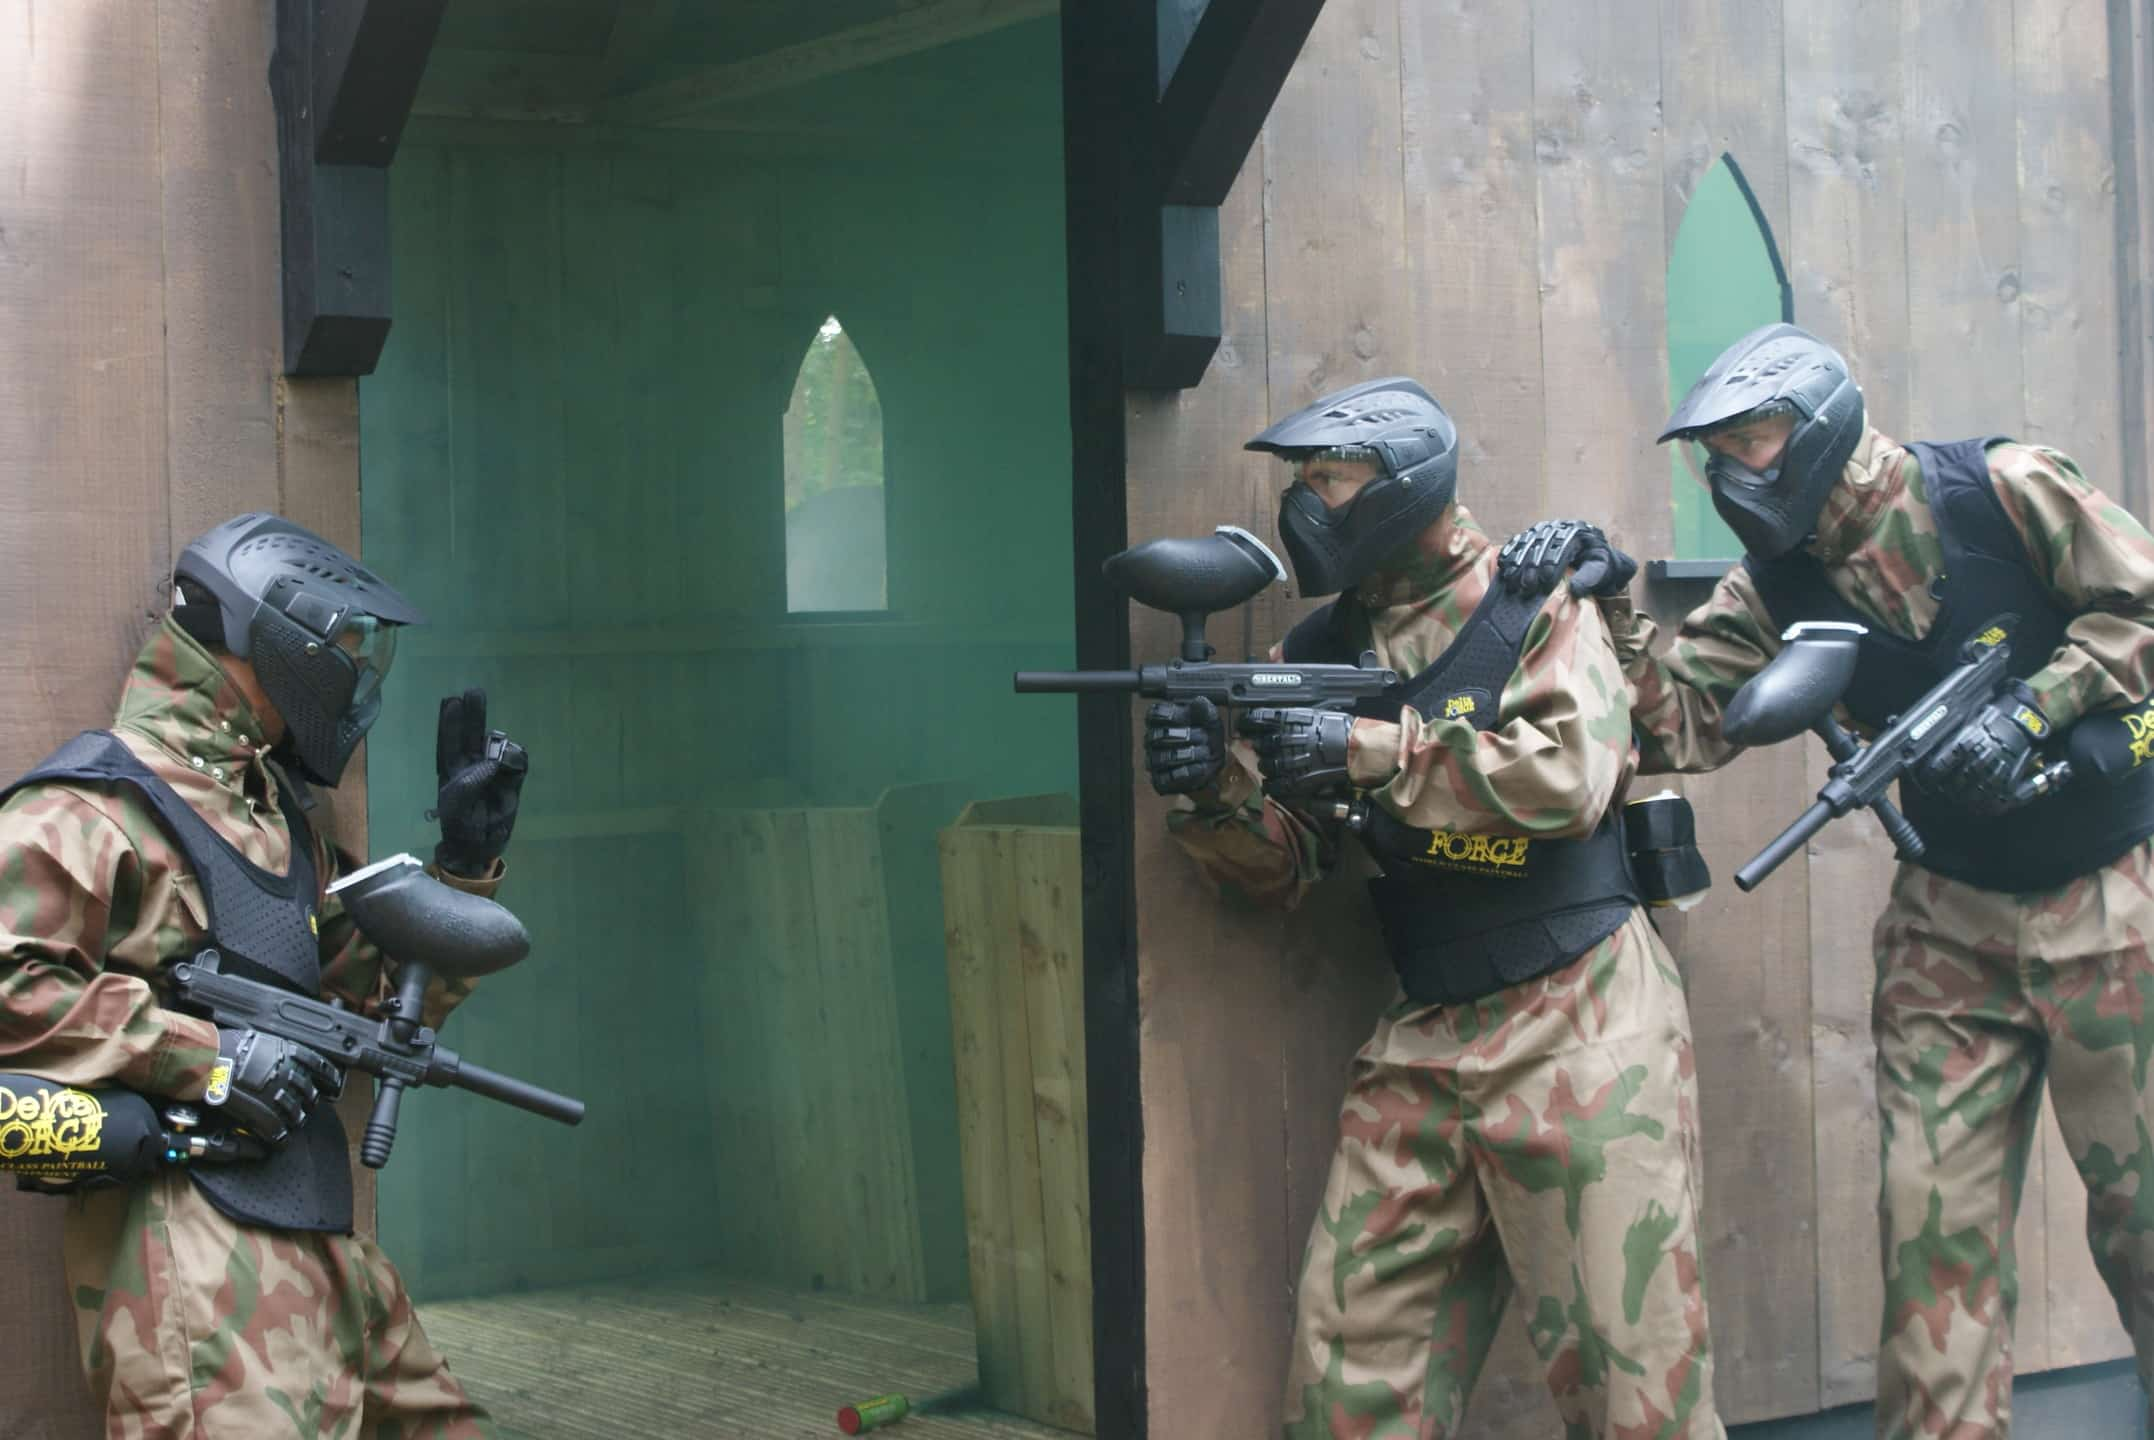 Three paintball players prepare to rush entrance to Crypt